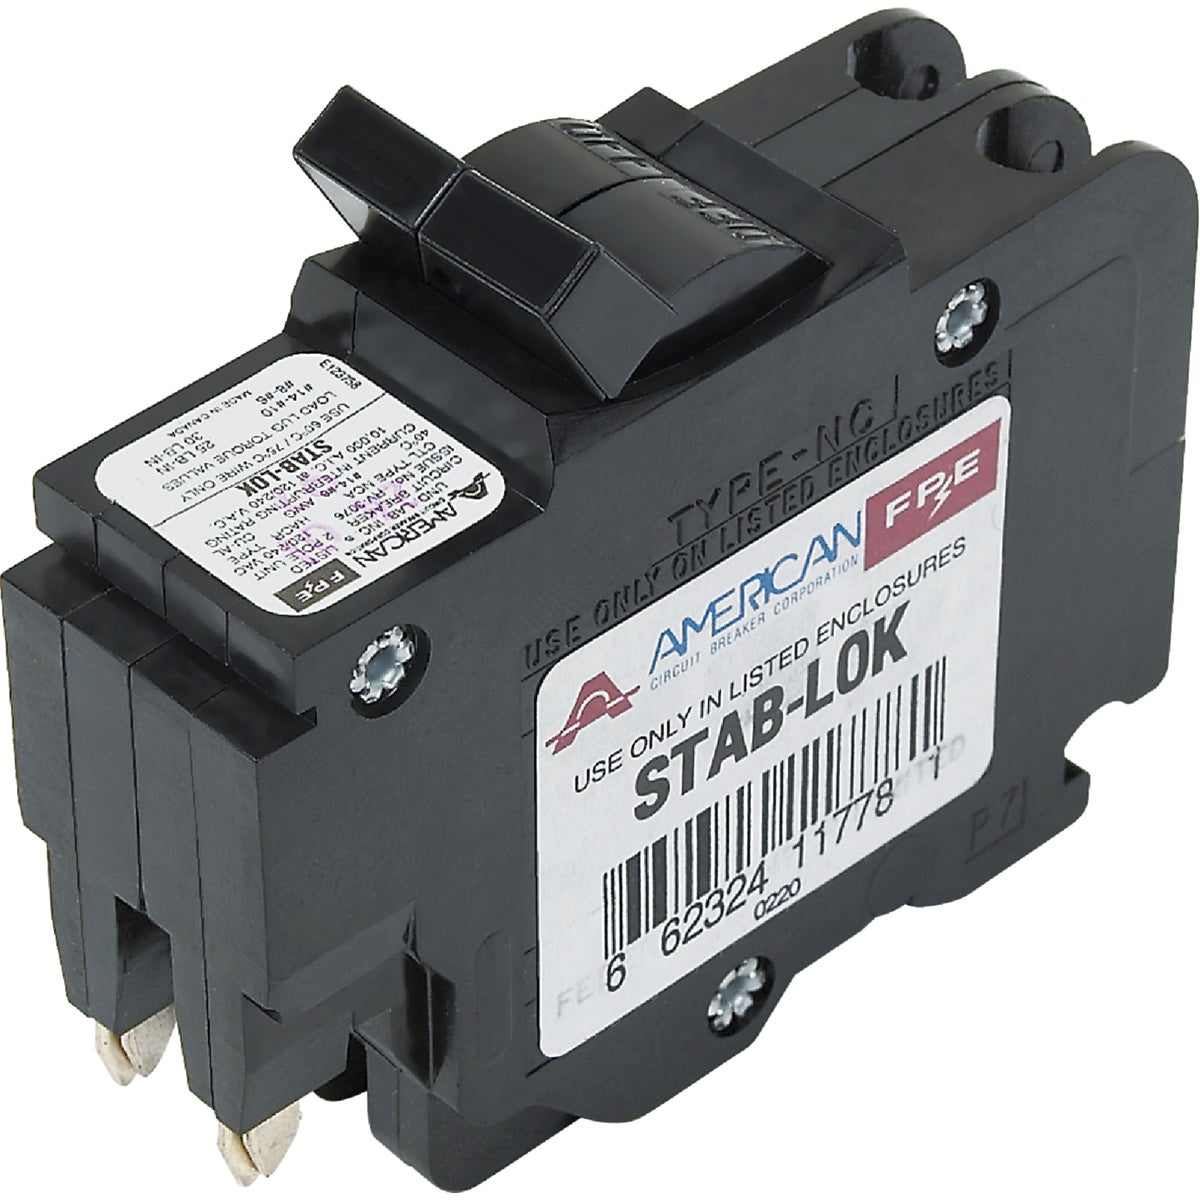 40A 2P CIRCUIT BREAKER - UBIF0240N by Connecticut Electric